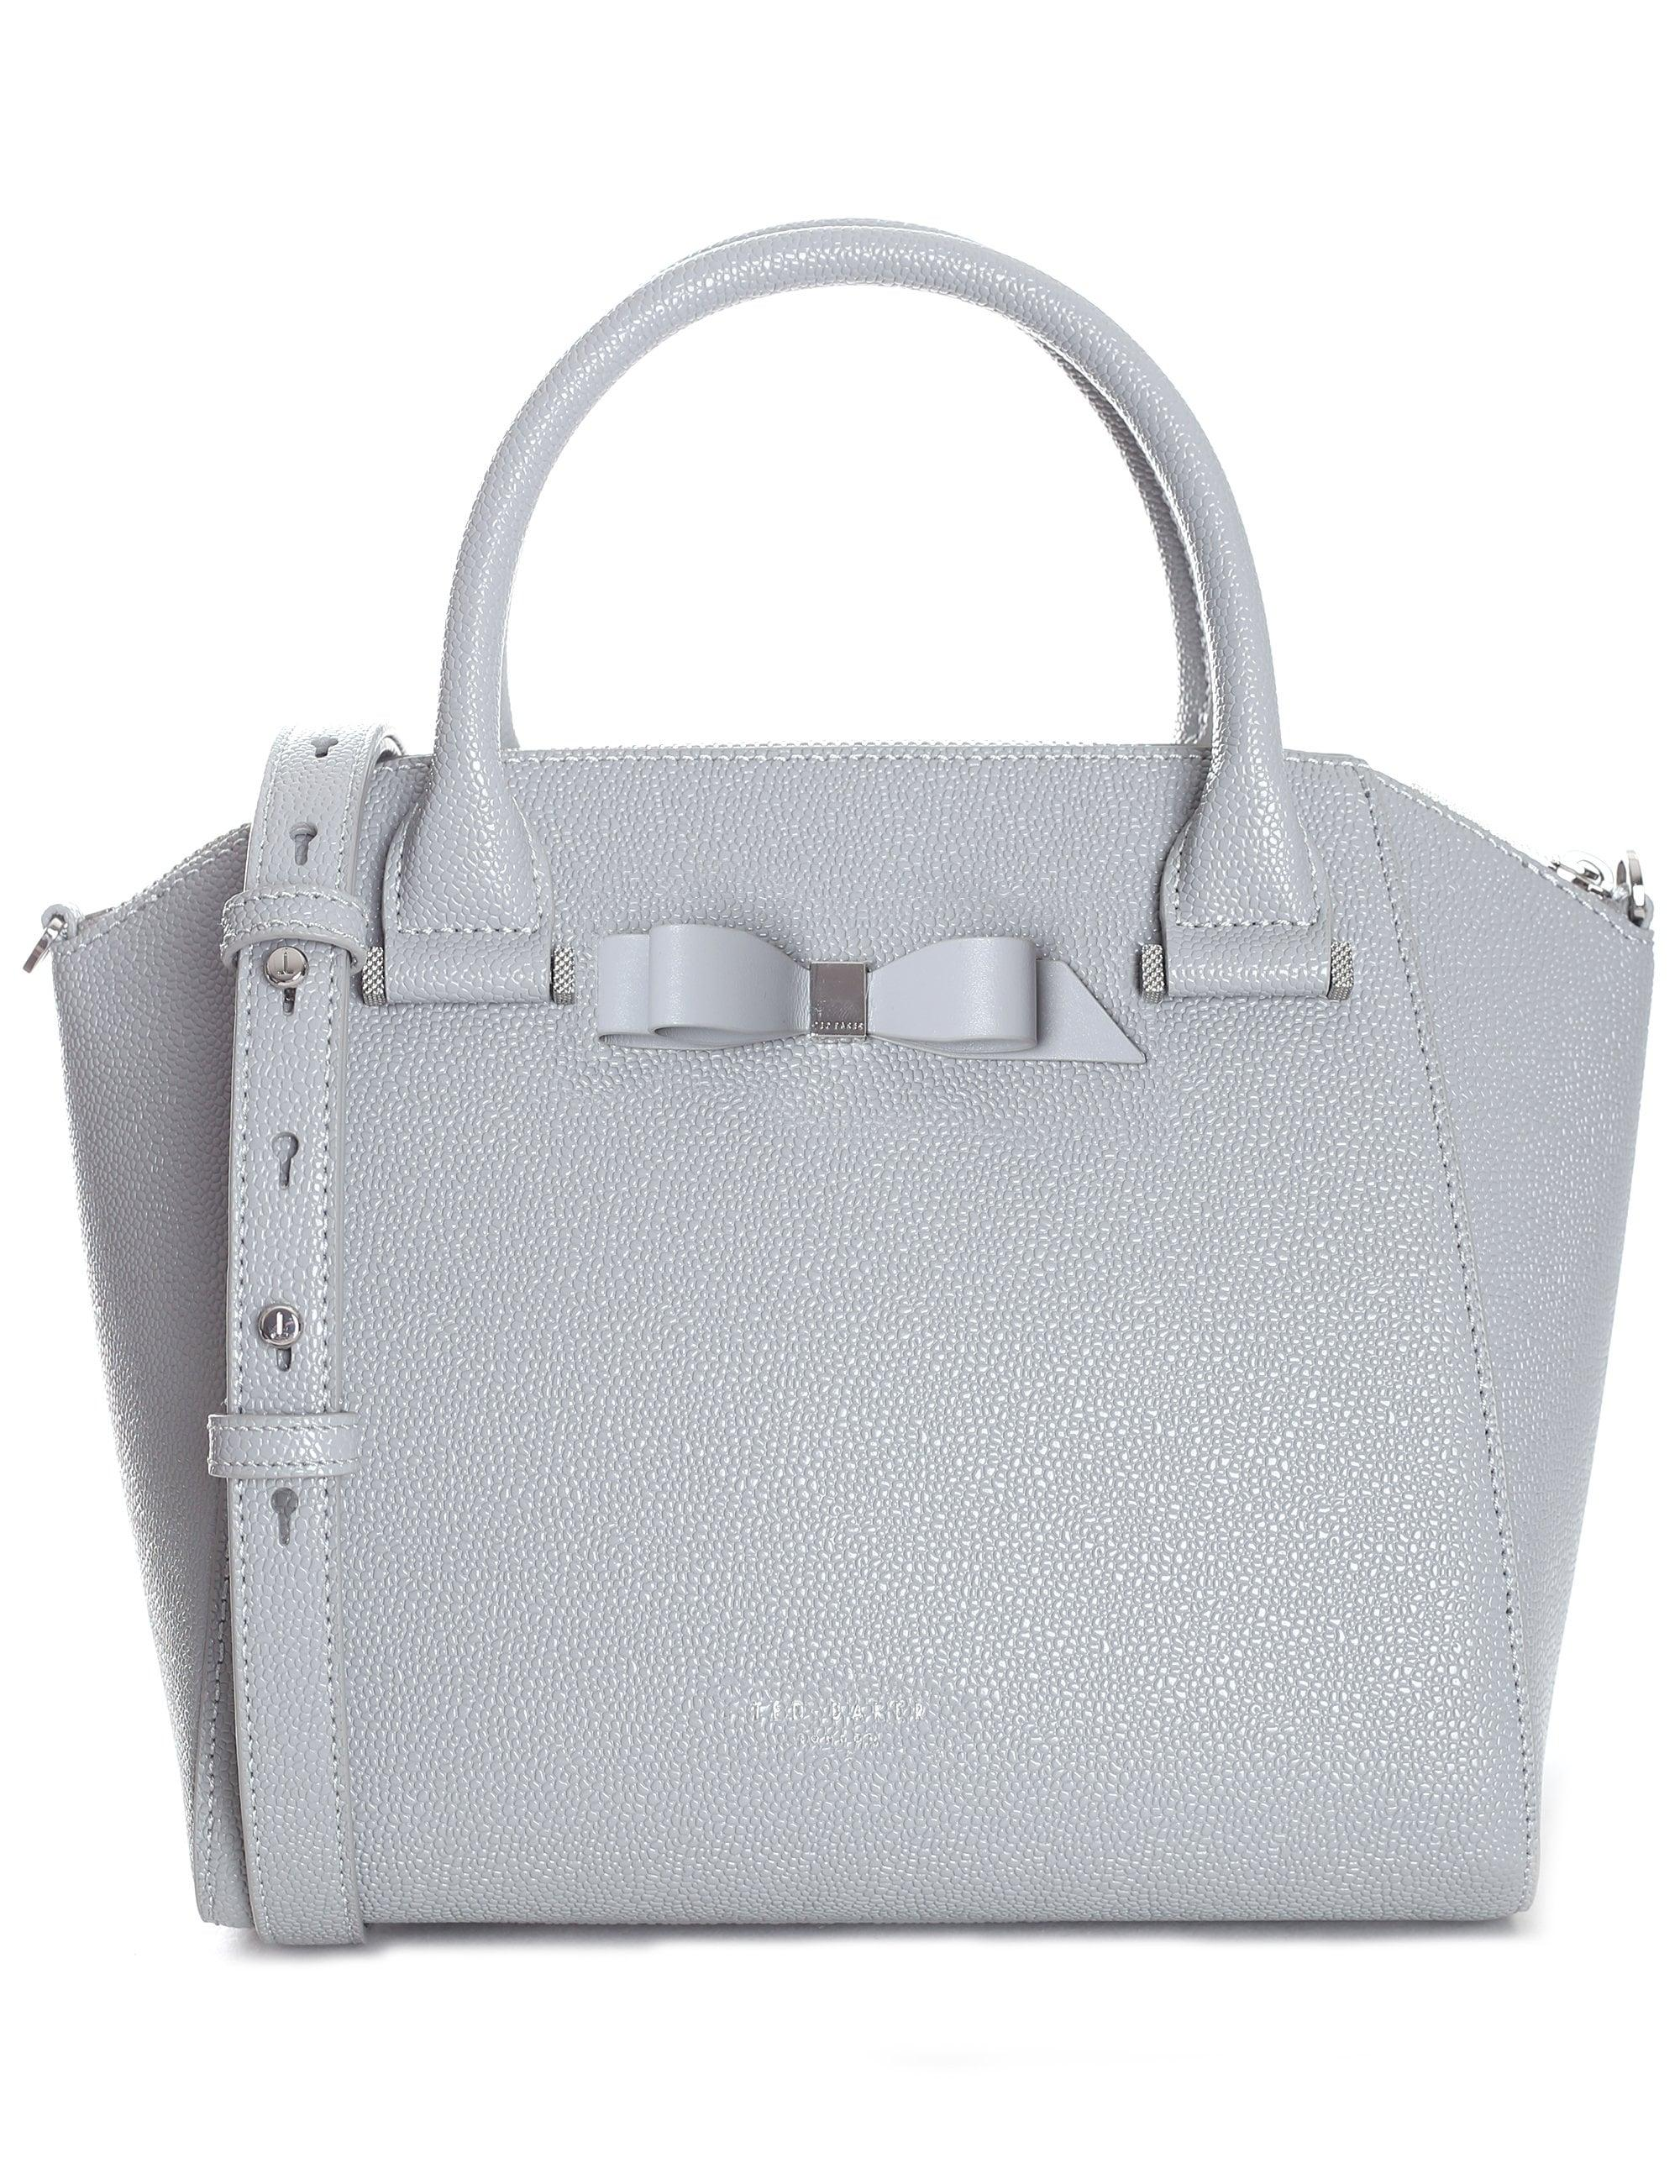 4ed5815385c6 Ted Baker Women s Bow Detail Zip Tote in Gray - Lyst